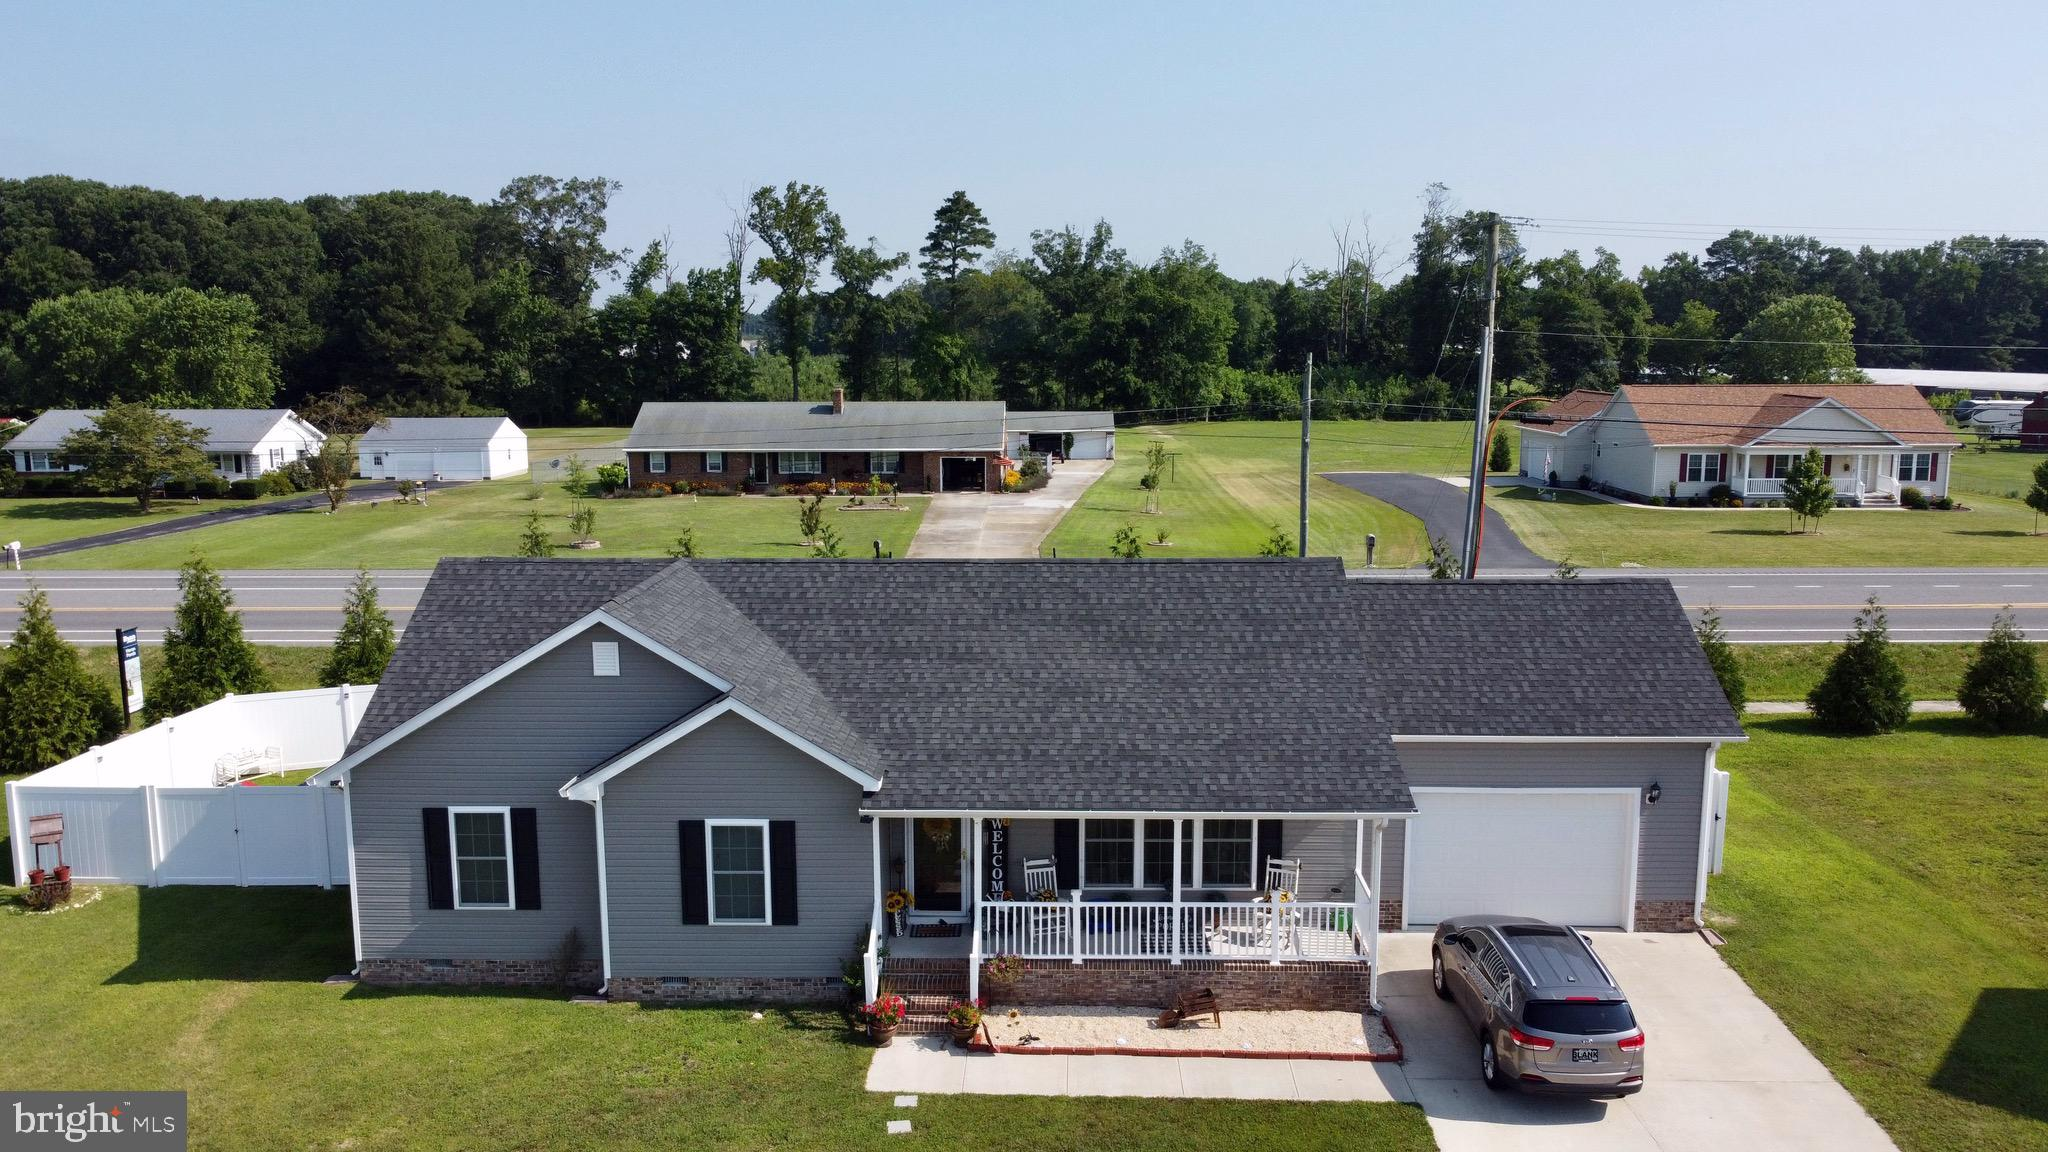 Check out this beautiful rancher styled home in a culdesac located in the Heron Ponds community loca